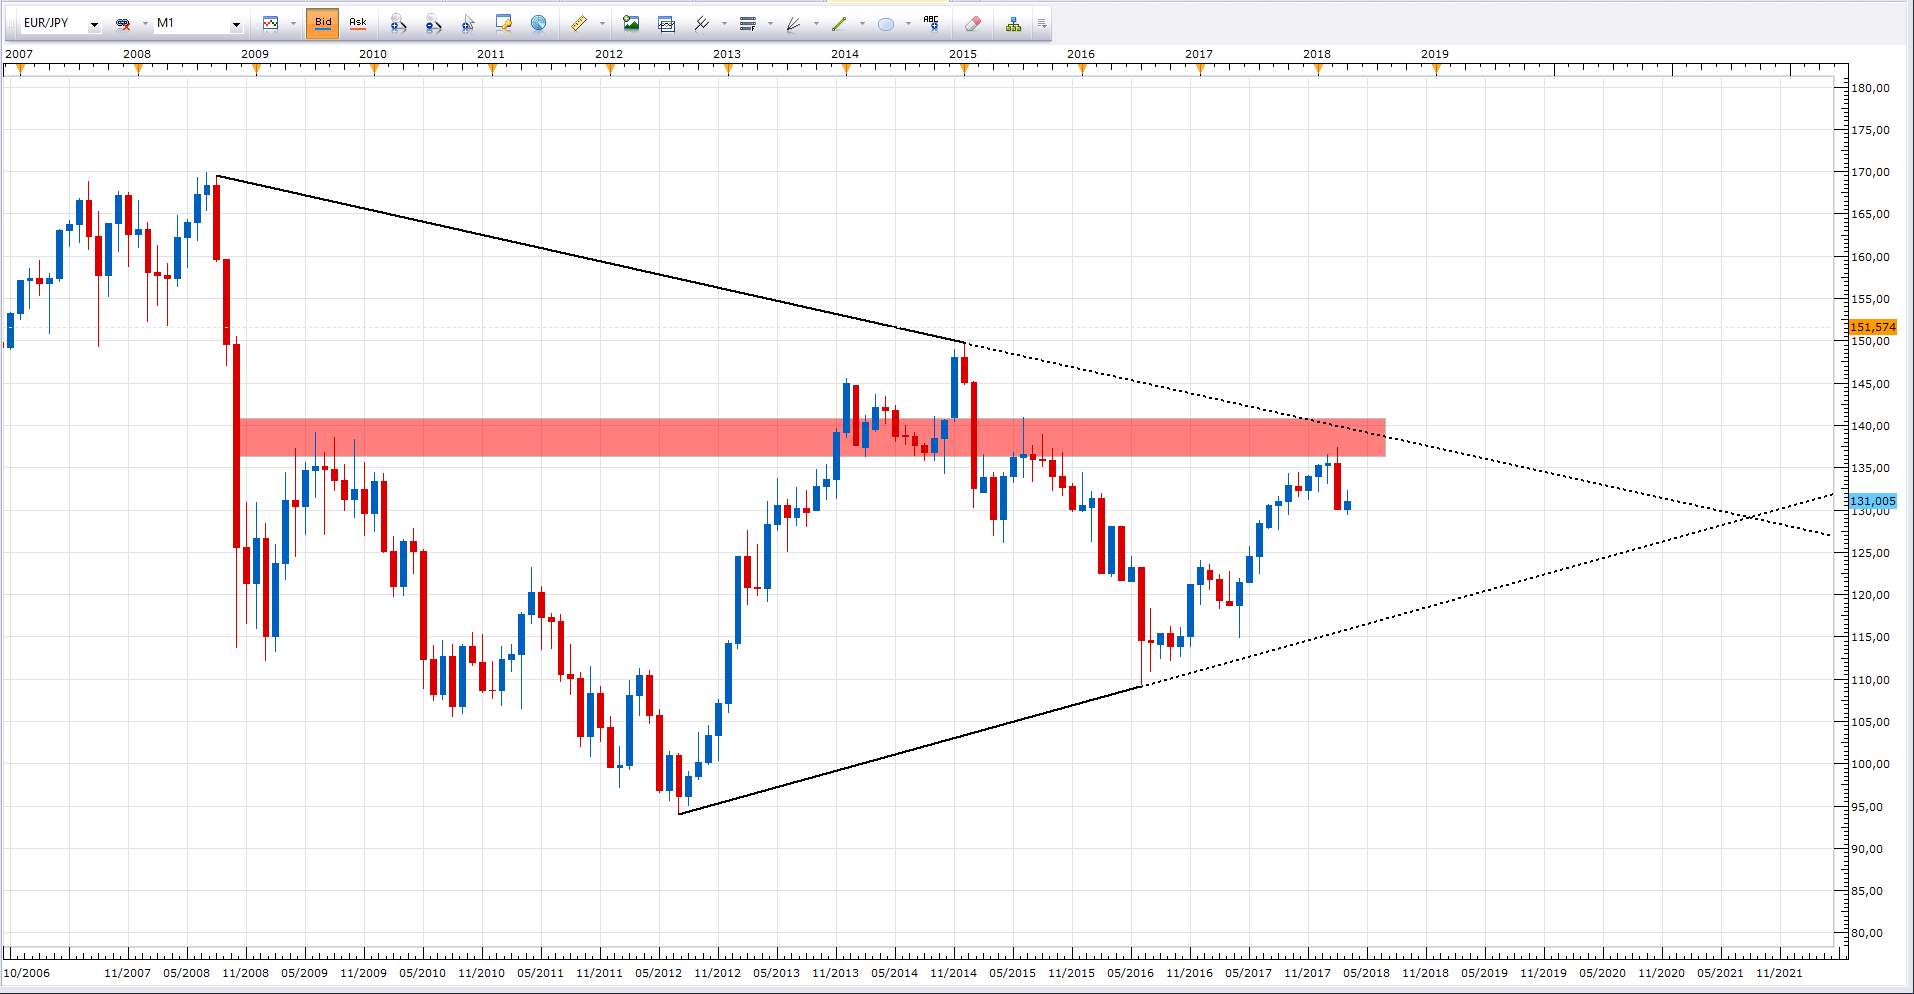 $EURJPY (EURO / JAPANESE YEN) - Where are we on the EURJPY?